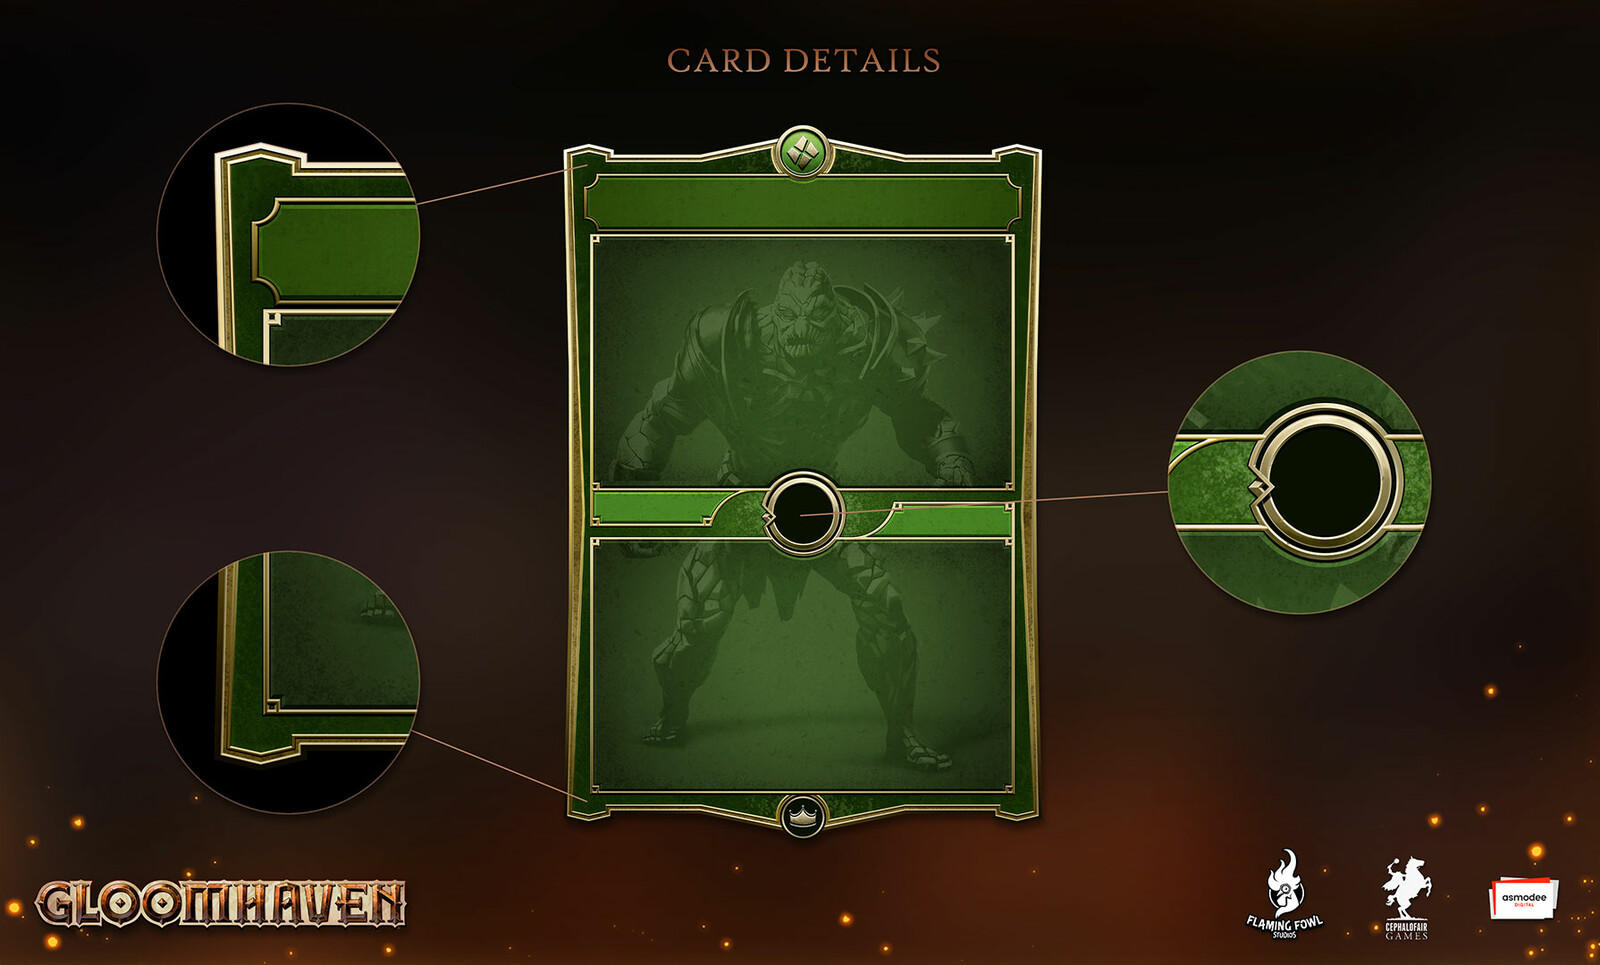 I wanted the cards to feel valuable and also make use of some nice textures.